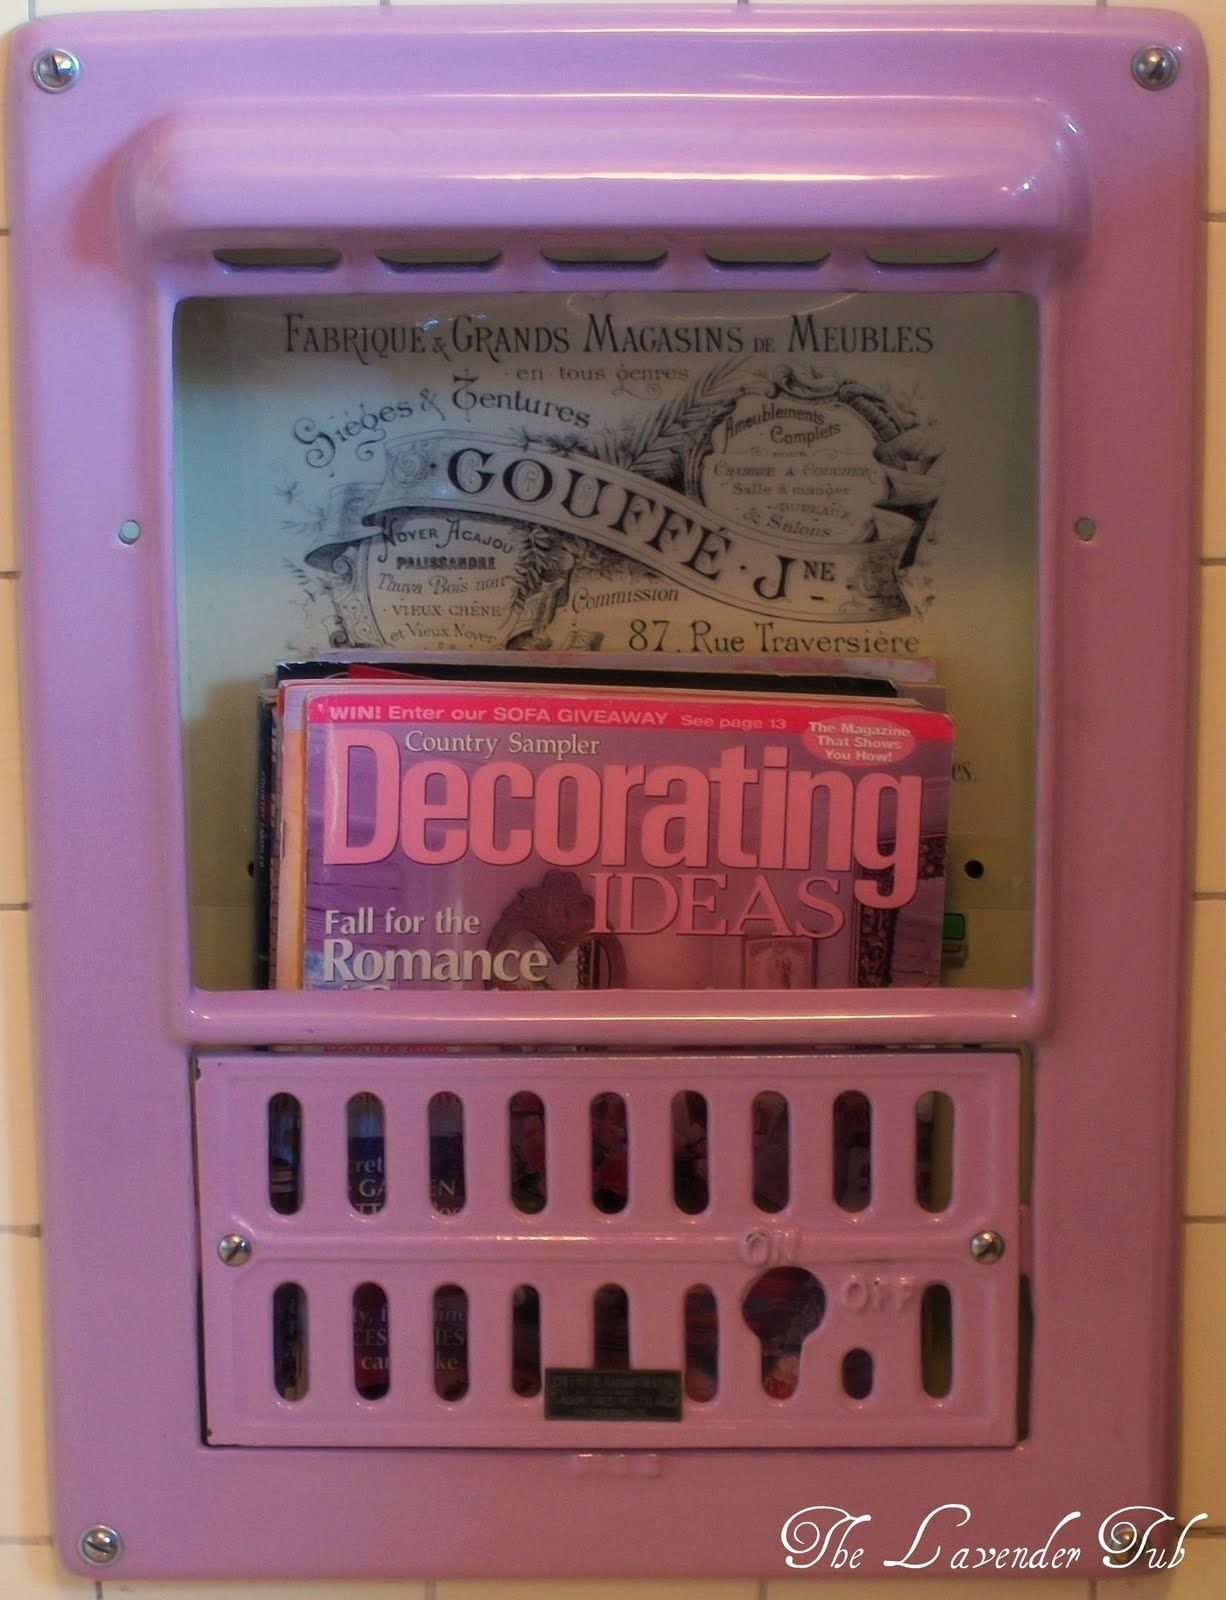 Bathroom gas heater - Neat Idea To Keep The Look Of Your Old Gas Bathroom Heater Cap The Line And Use The Case For Decoration From The Lavender Tub Wall Heater Junk To Jewels